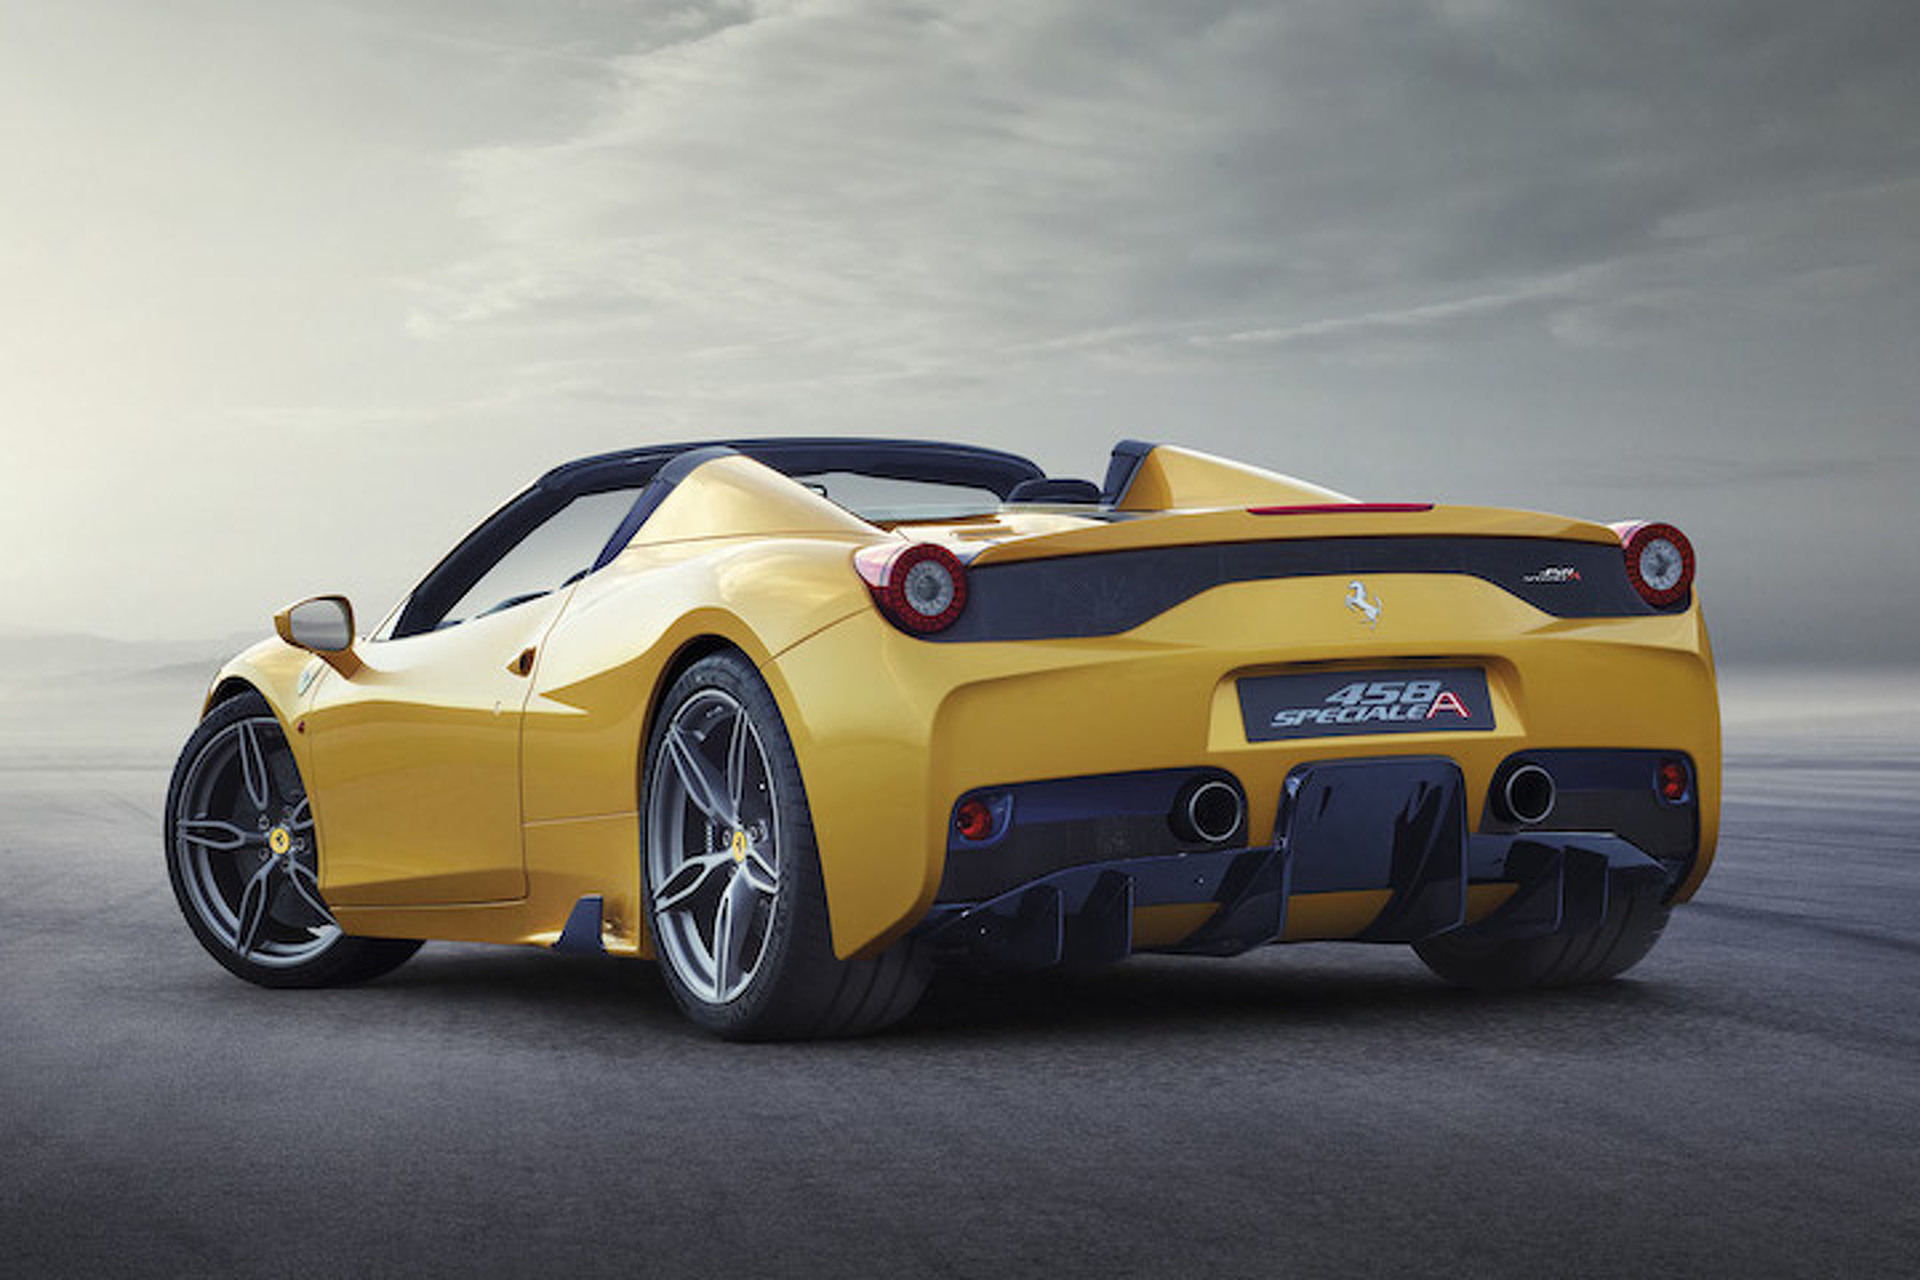 Ferrari 458 Speciale A Goes 200MPH Without a Roof